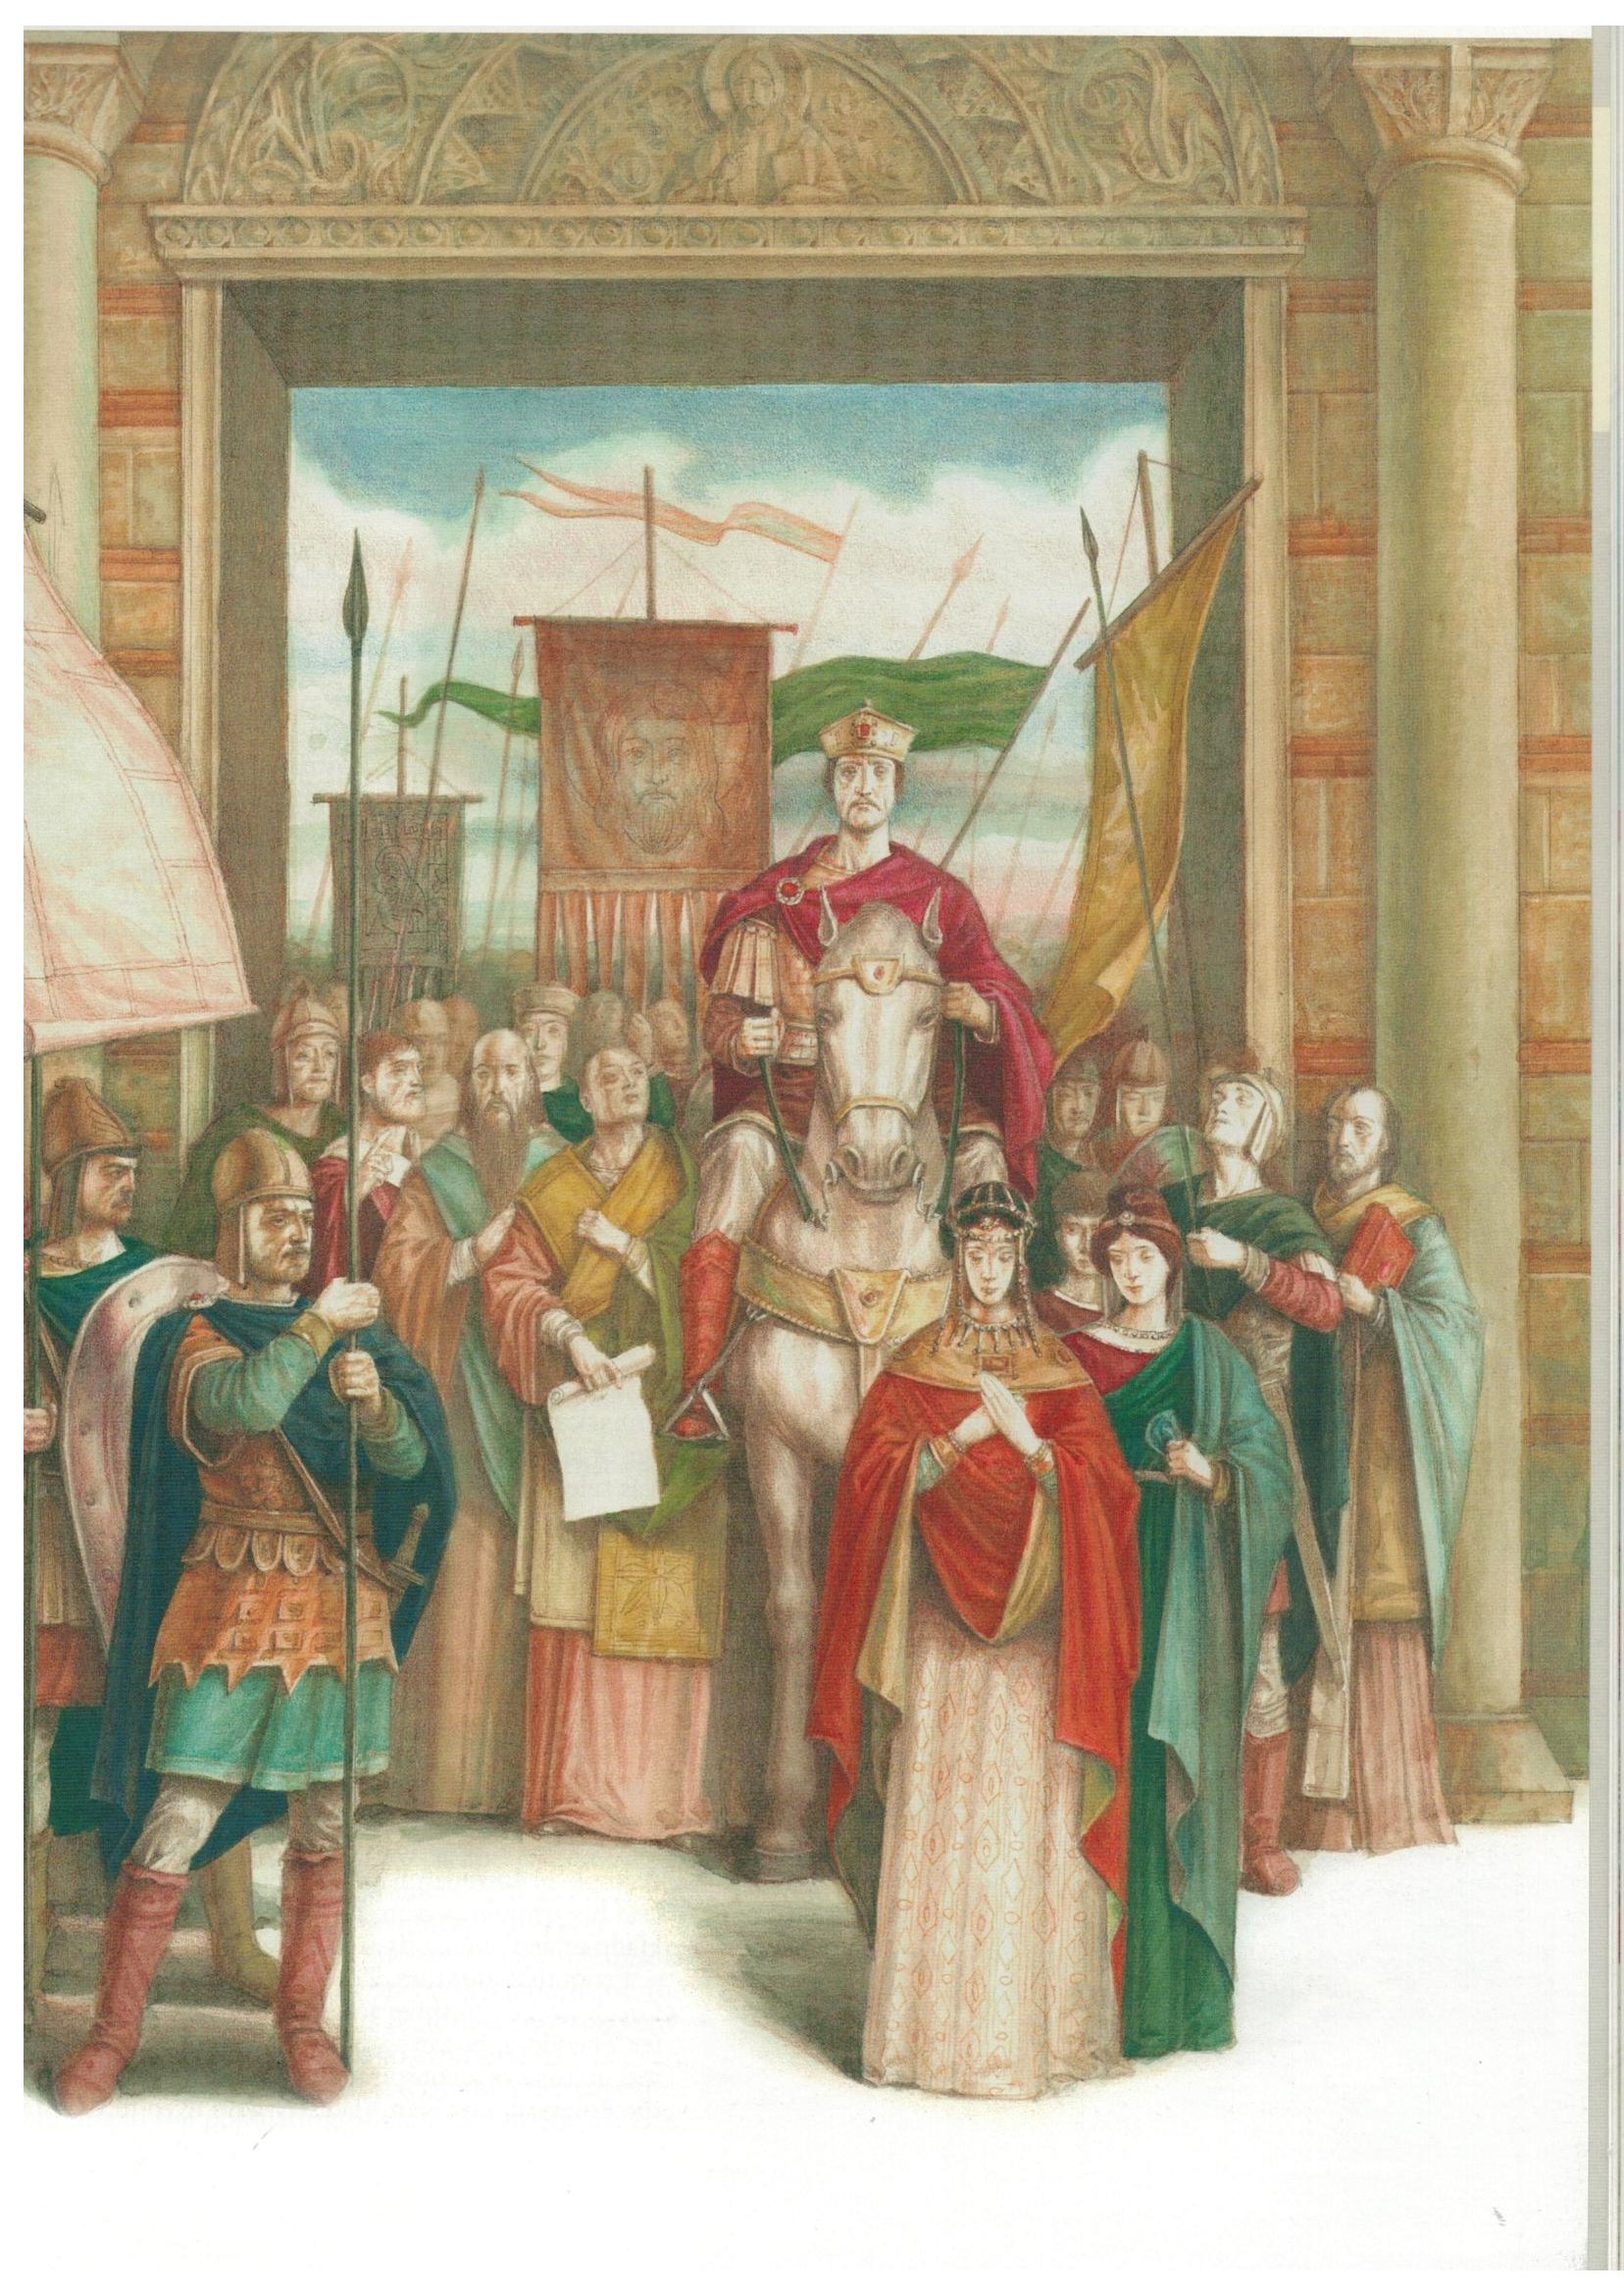 basil-ii-triumph-from-rulers-of-the-byzantine-empire-published-by-kibea